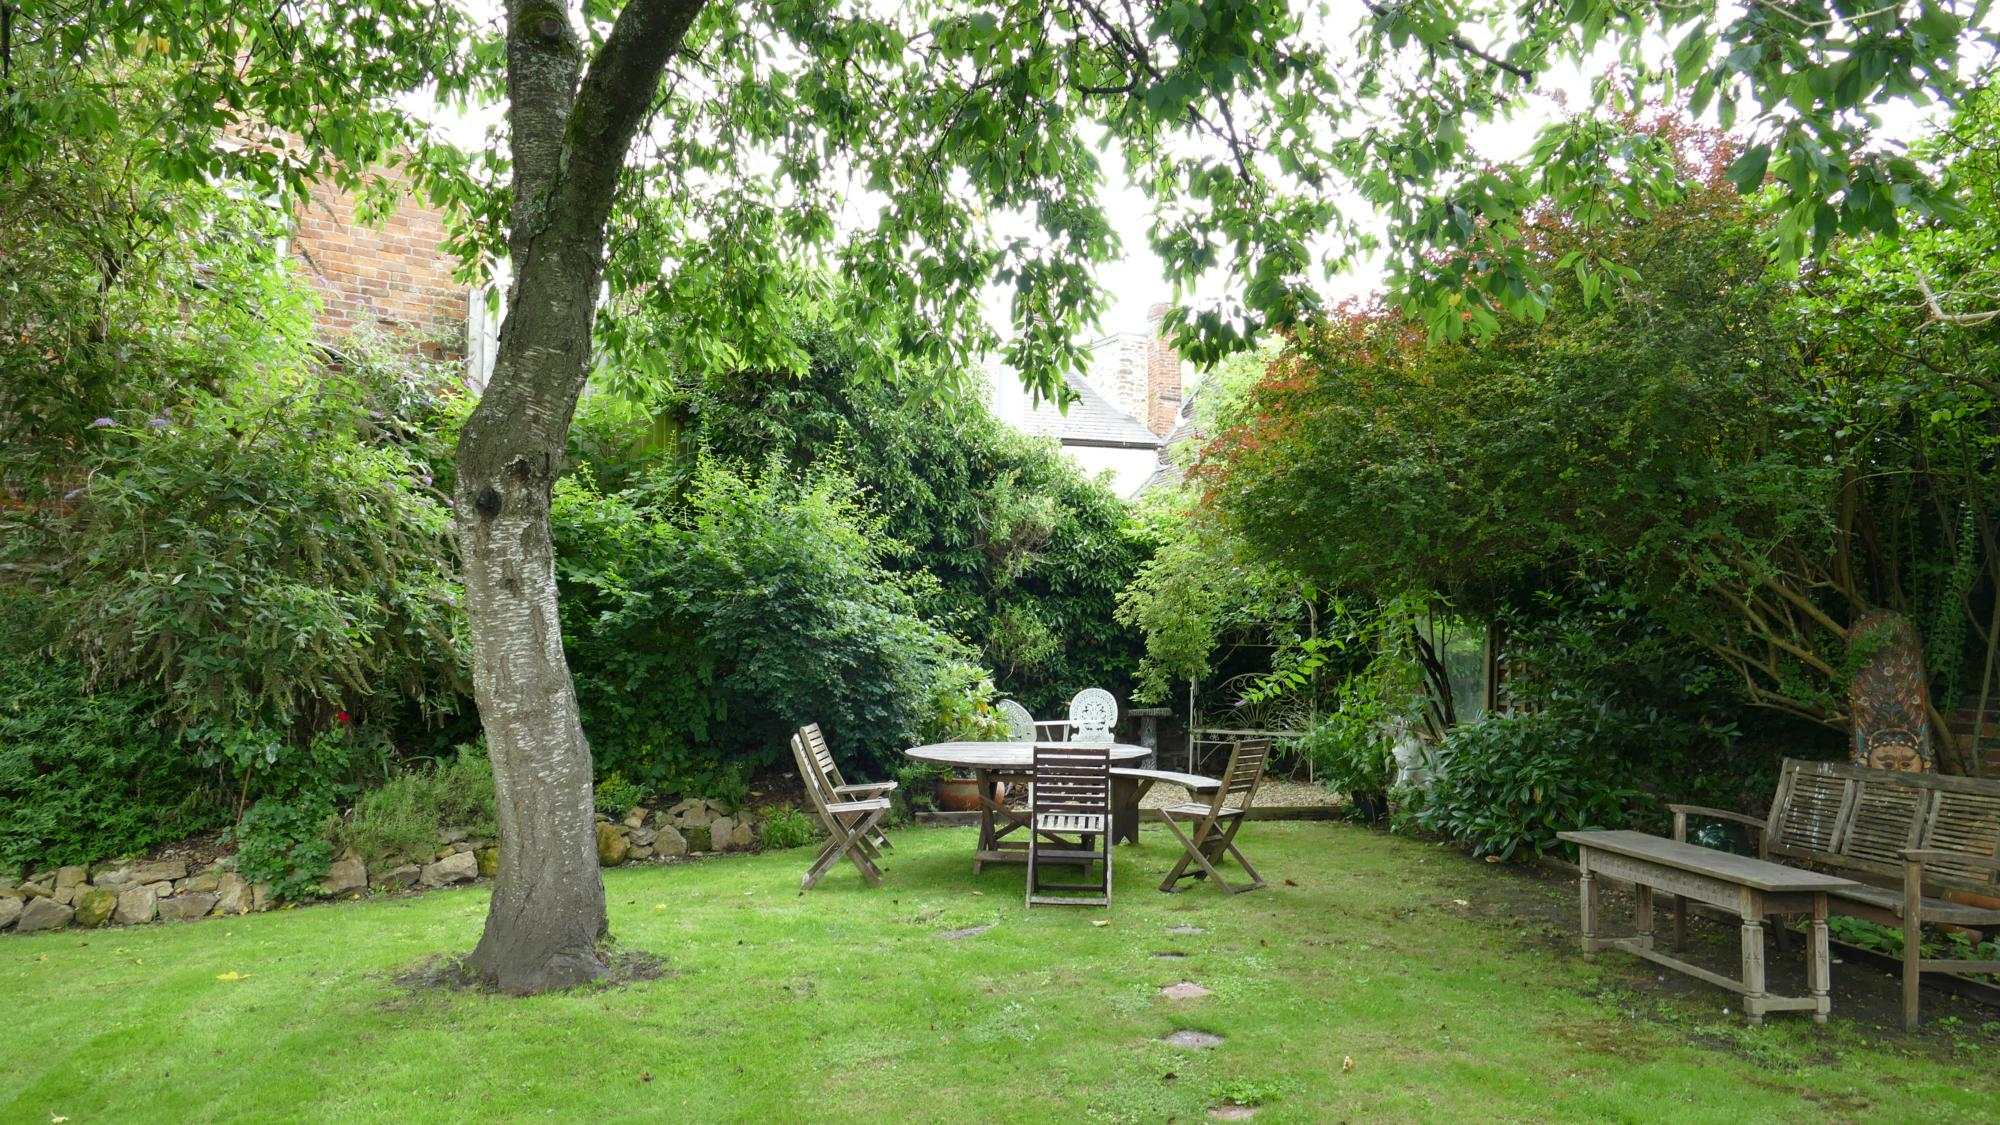 B&Bs in Wincanton holidays at Cool Places